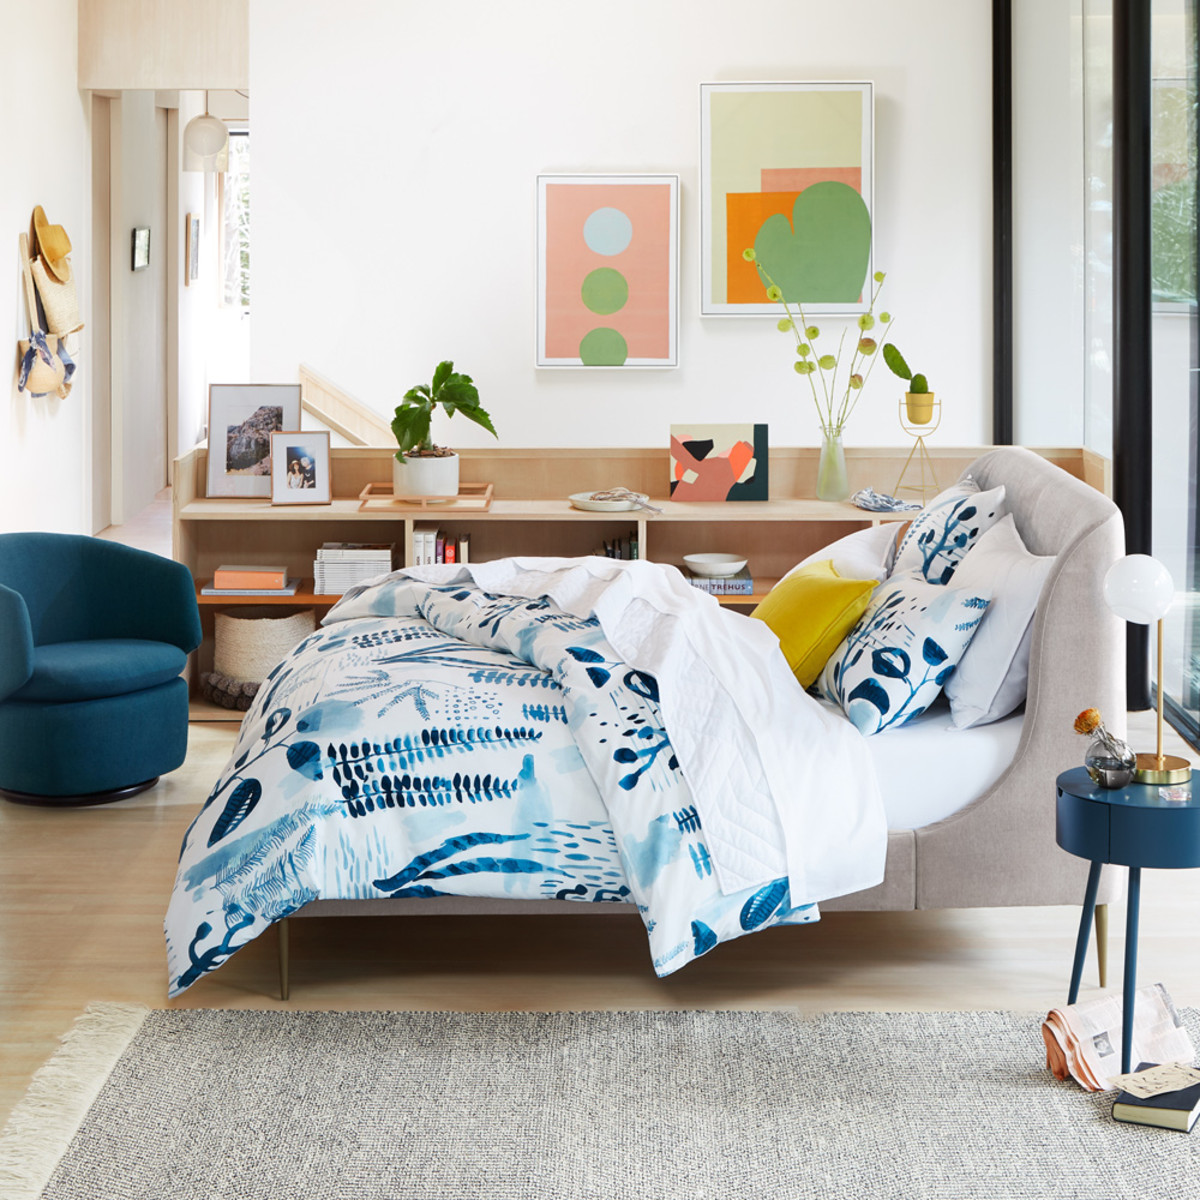 Image sourced from West Elm